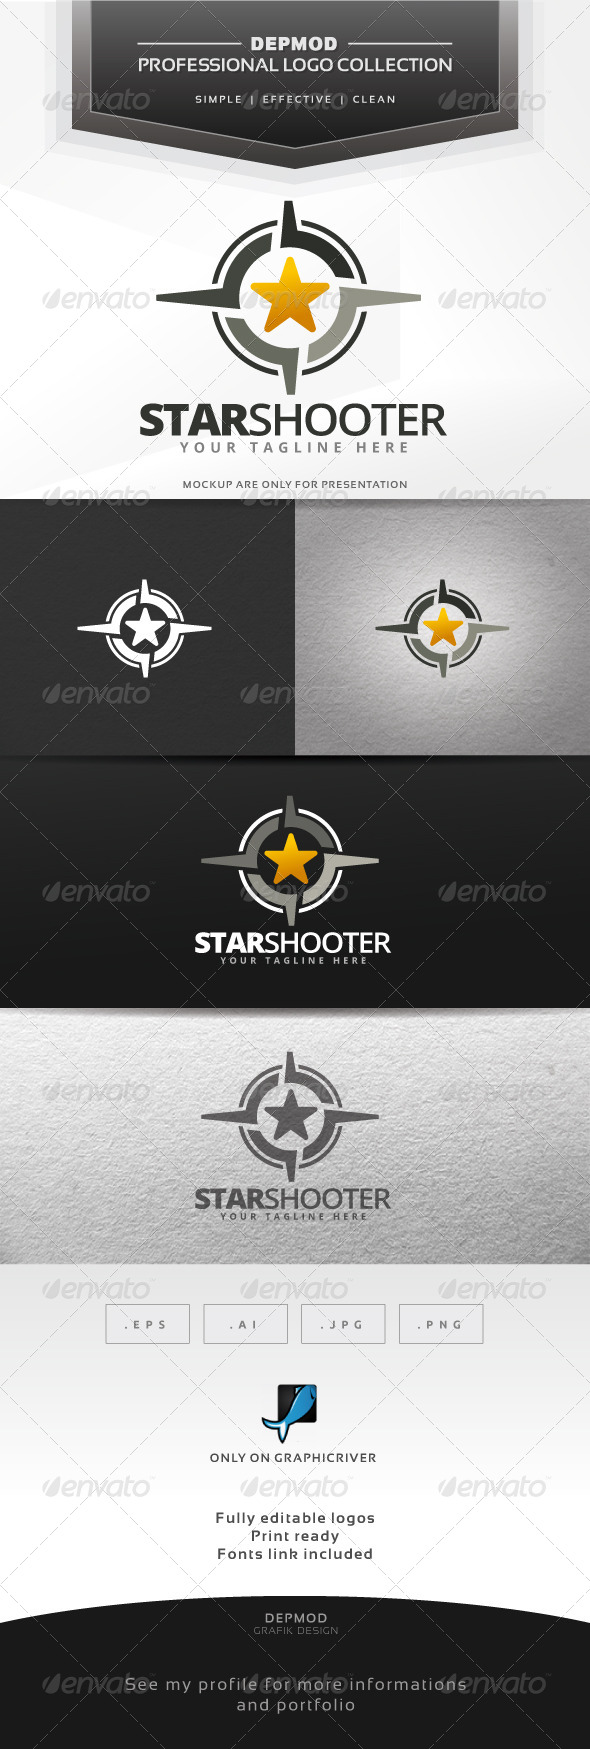 Star Shooter Logo